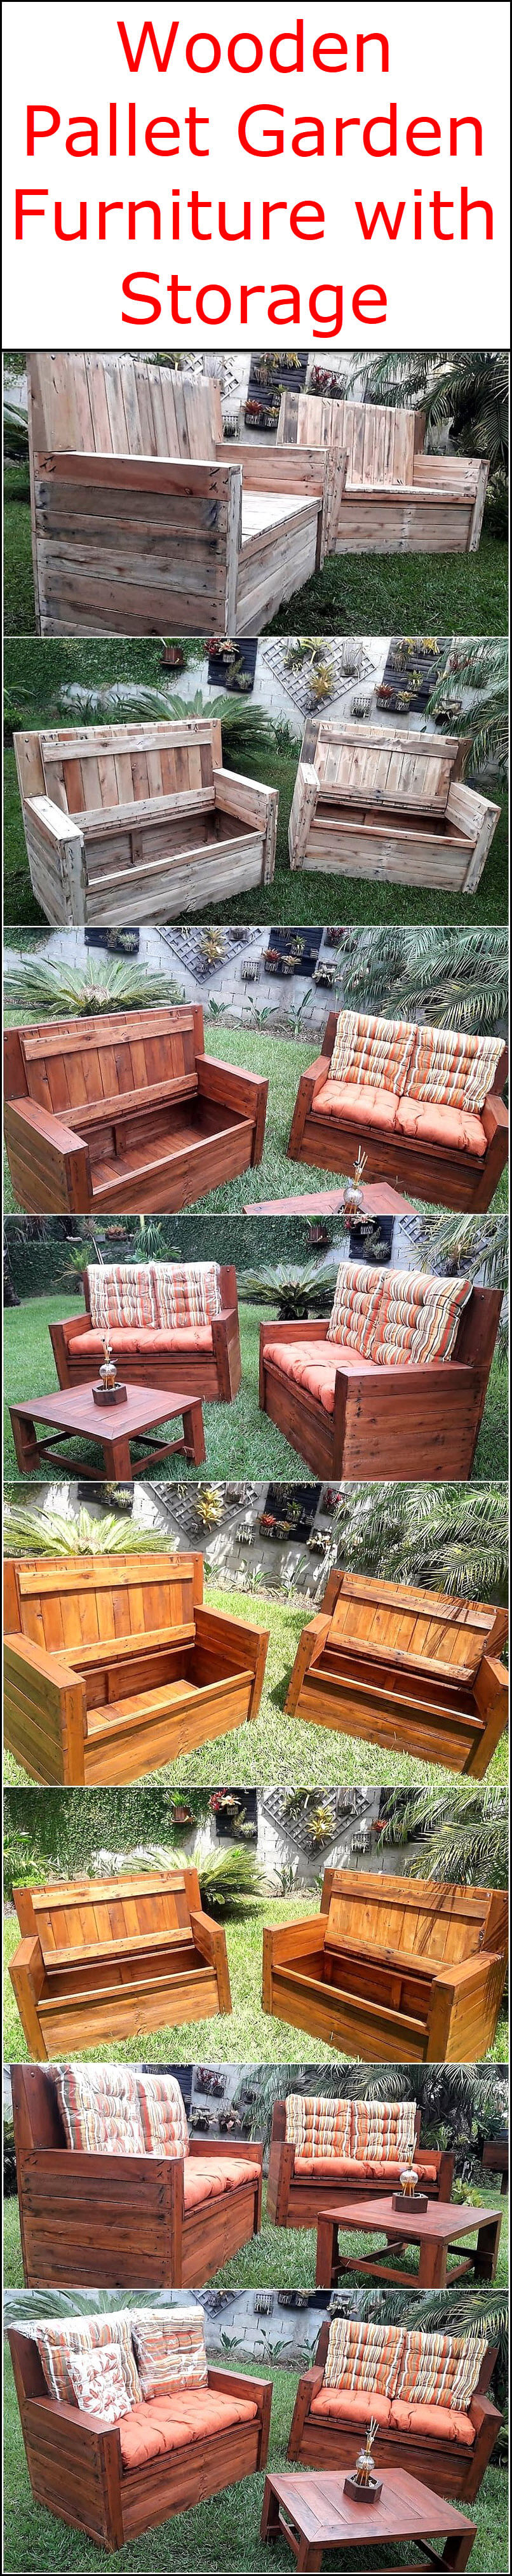 Wooden Pallet Garden Furniture with Storage